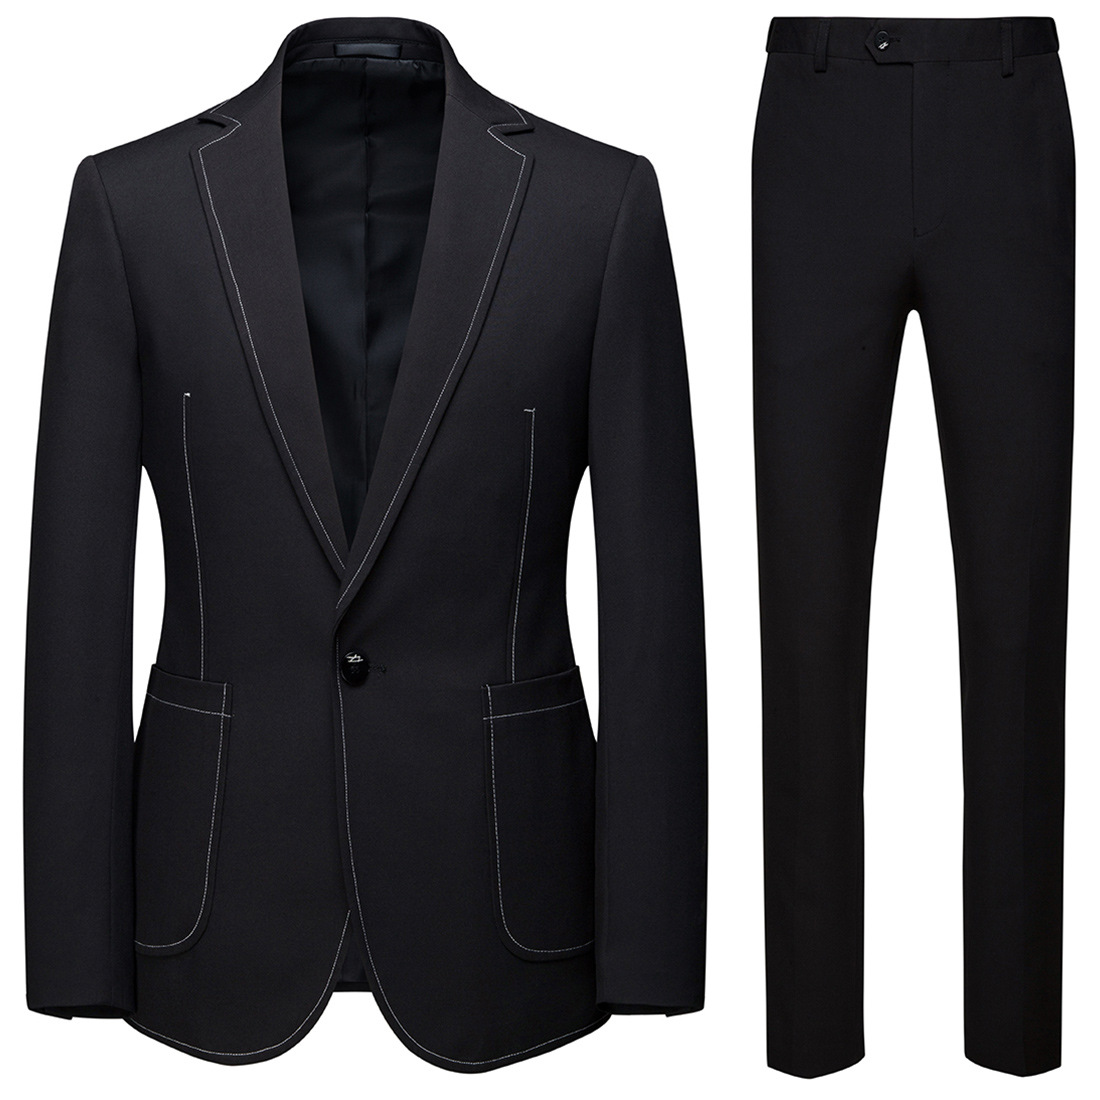 Boutique 19 New Style Europe And America Leisure Suit 2 Pieces Groom Best Man Wedding One-Button Suit Set Male Blazer